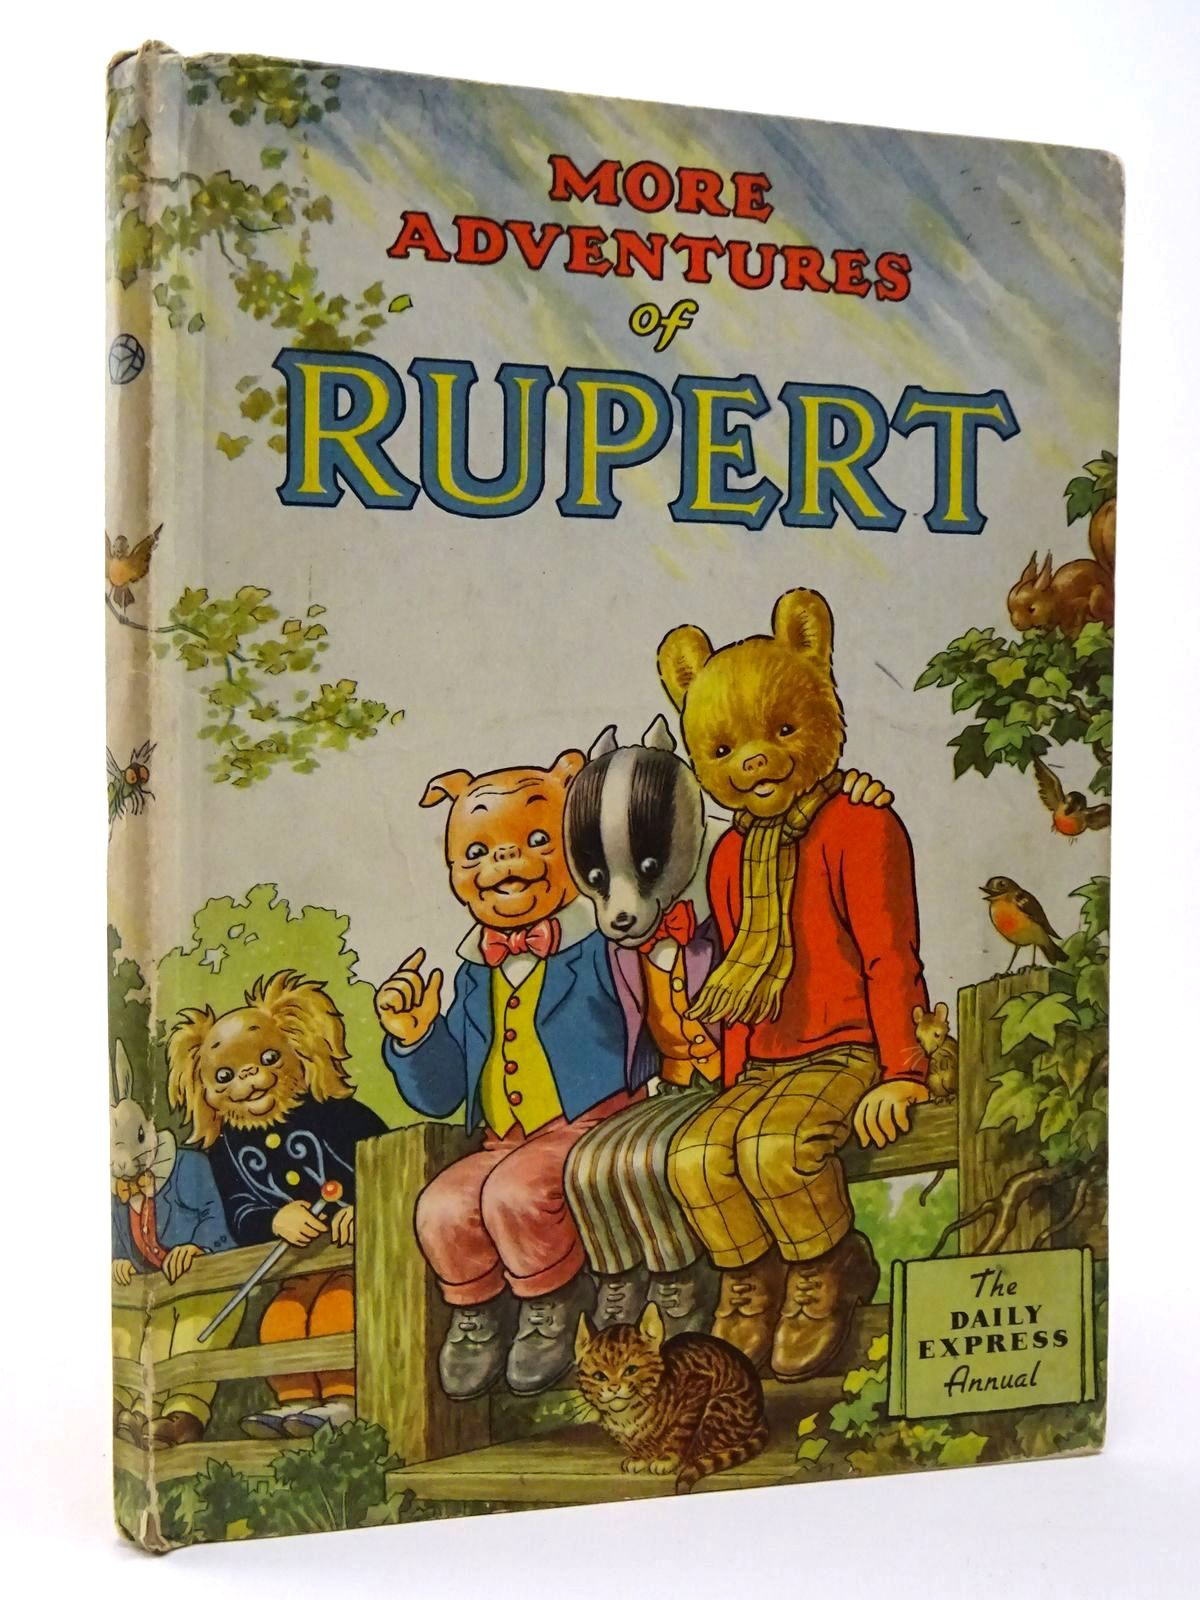 Photo of RUPERT ANNUAL 1953 - MORE ADVENTURES OF RUPERT written by Bestall, Alfred illustrated by Bestall, Alfred published by Daily Express (STOCK CODE: 2129478)  for sale by Stella & Rose's Books